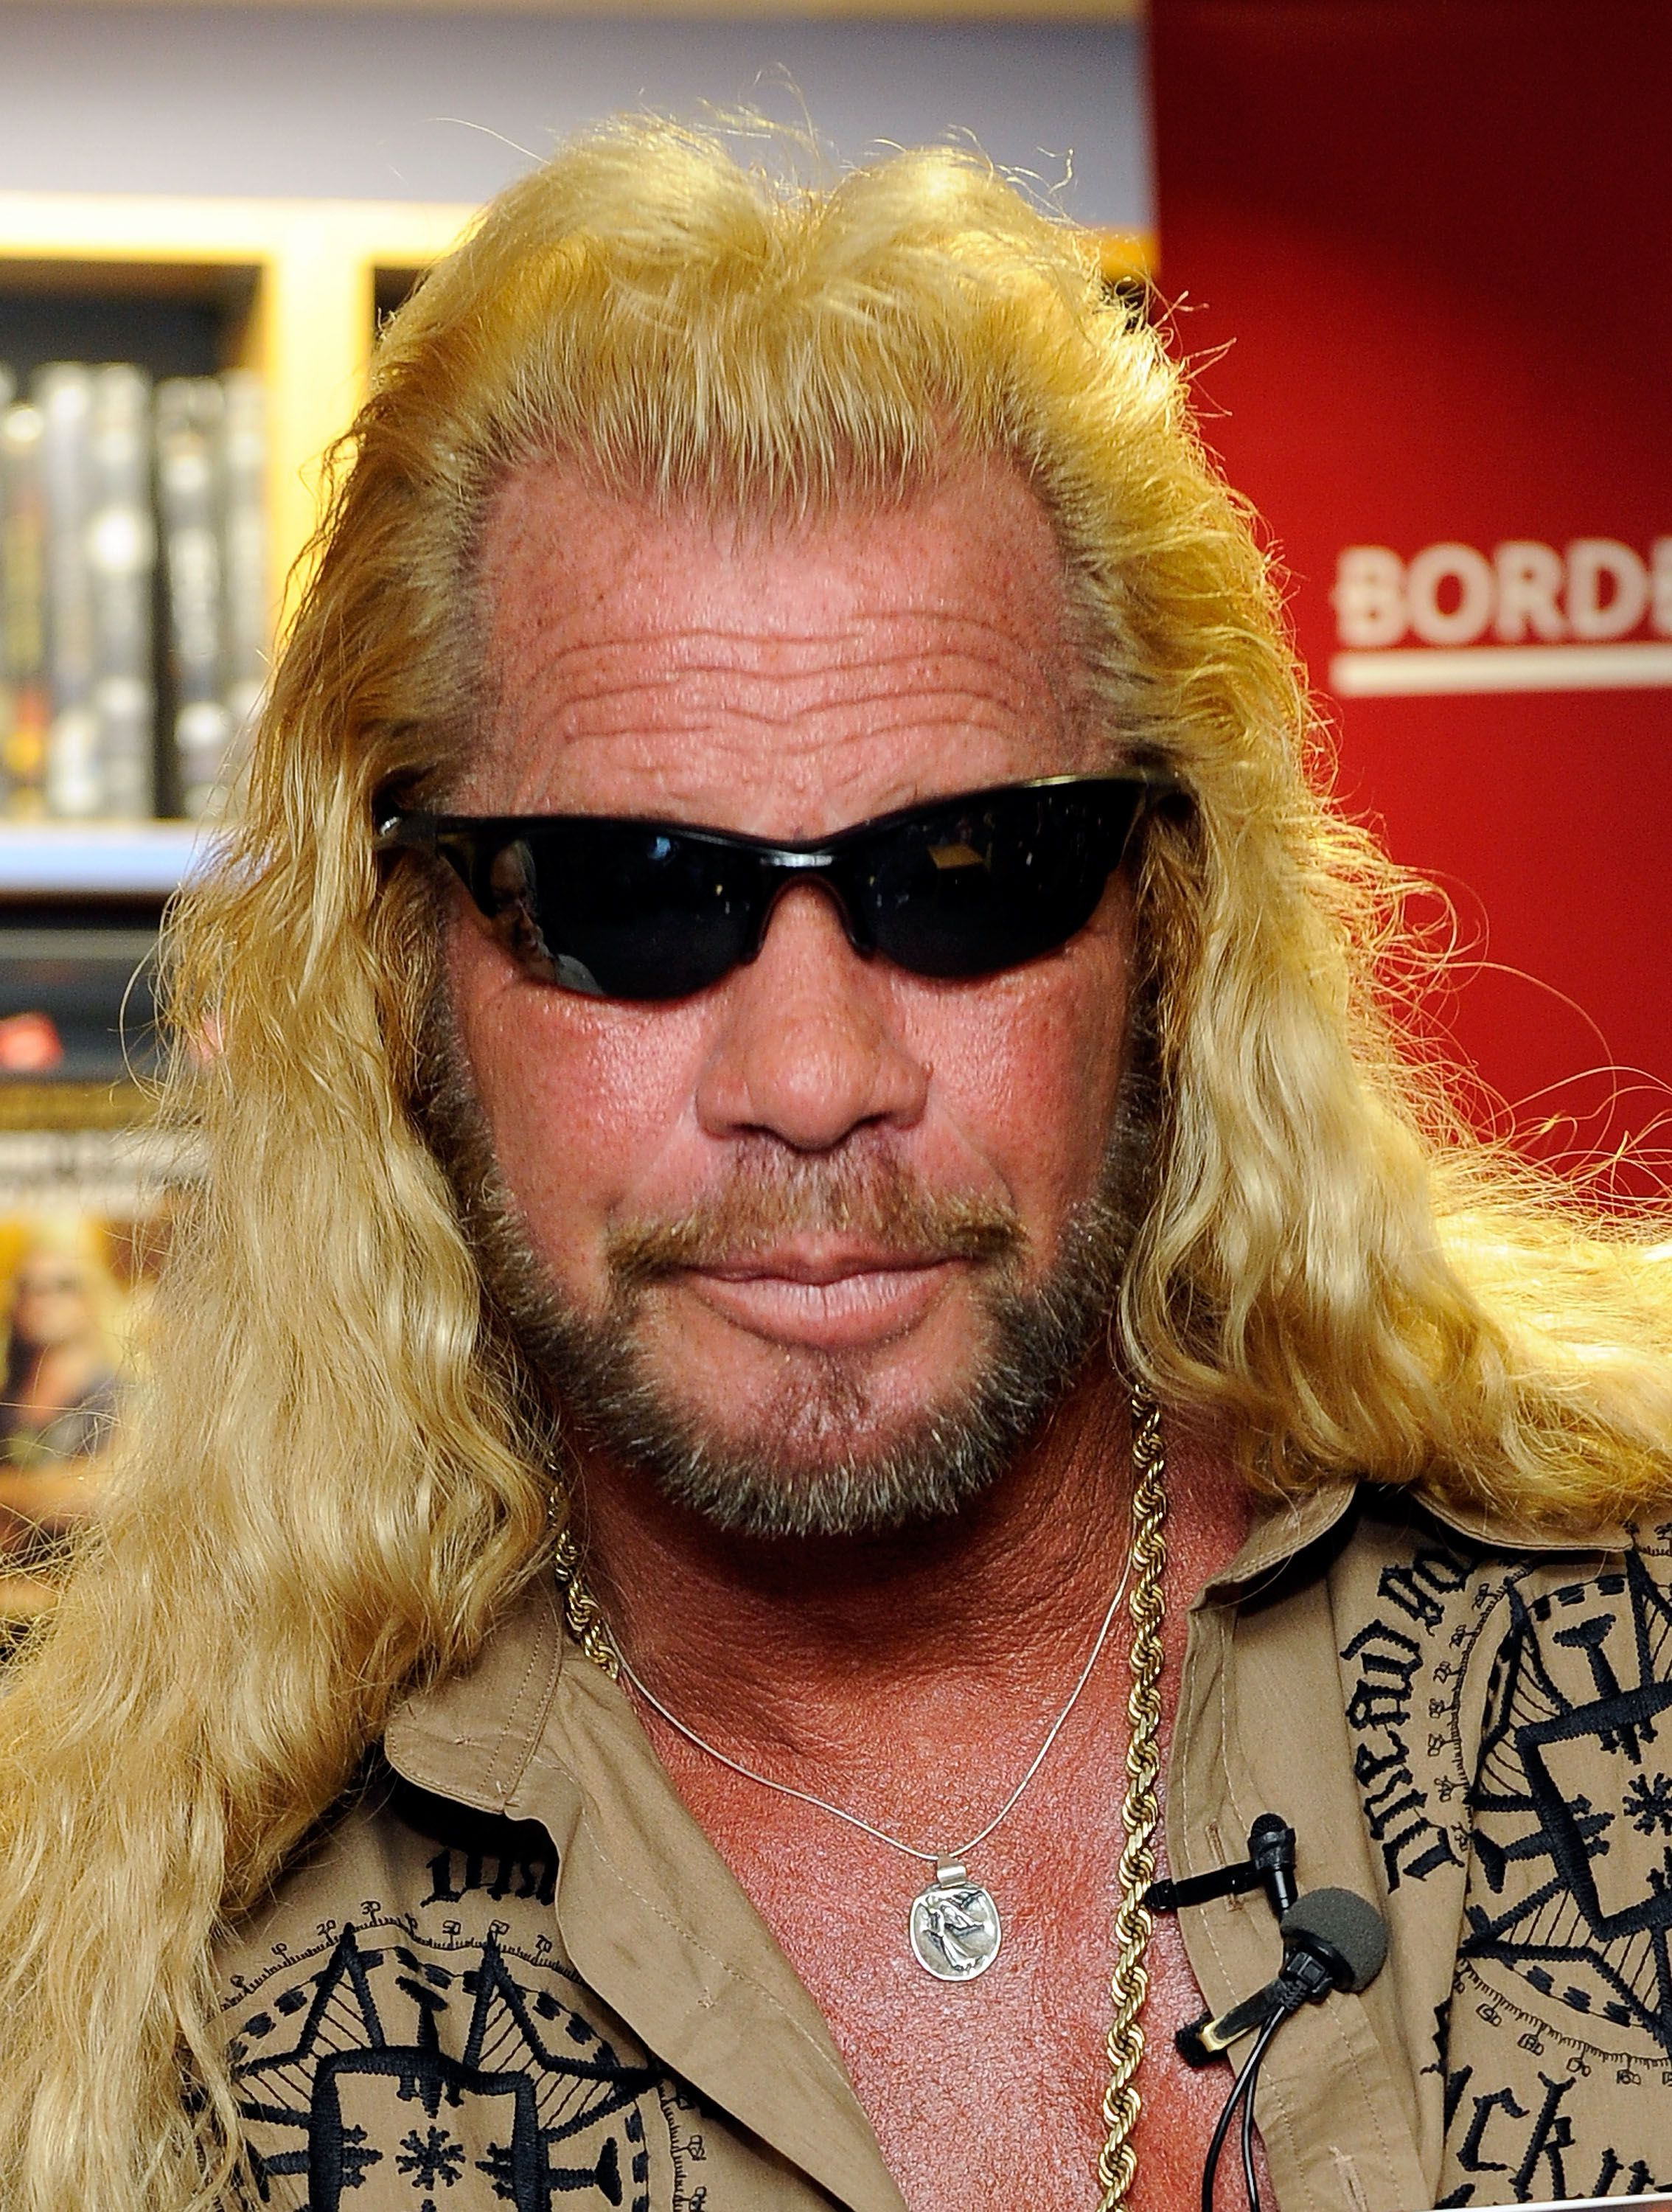 """Duane Chapman, known in the media as """"Dog the Bounty Hunter"""" promotes his book """"When Mercy Is Shown, Mercy Is Given"""" at Borders Wall Street on March 19, 2010 in New York City. 